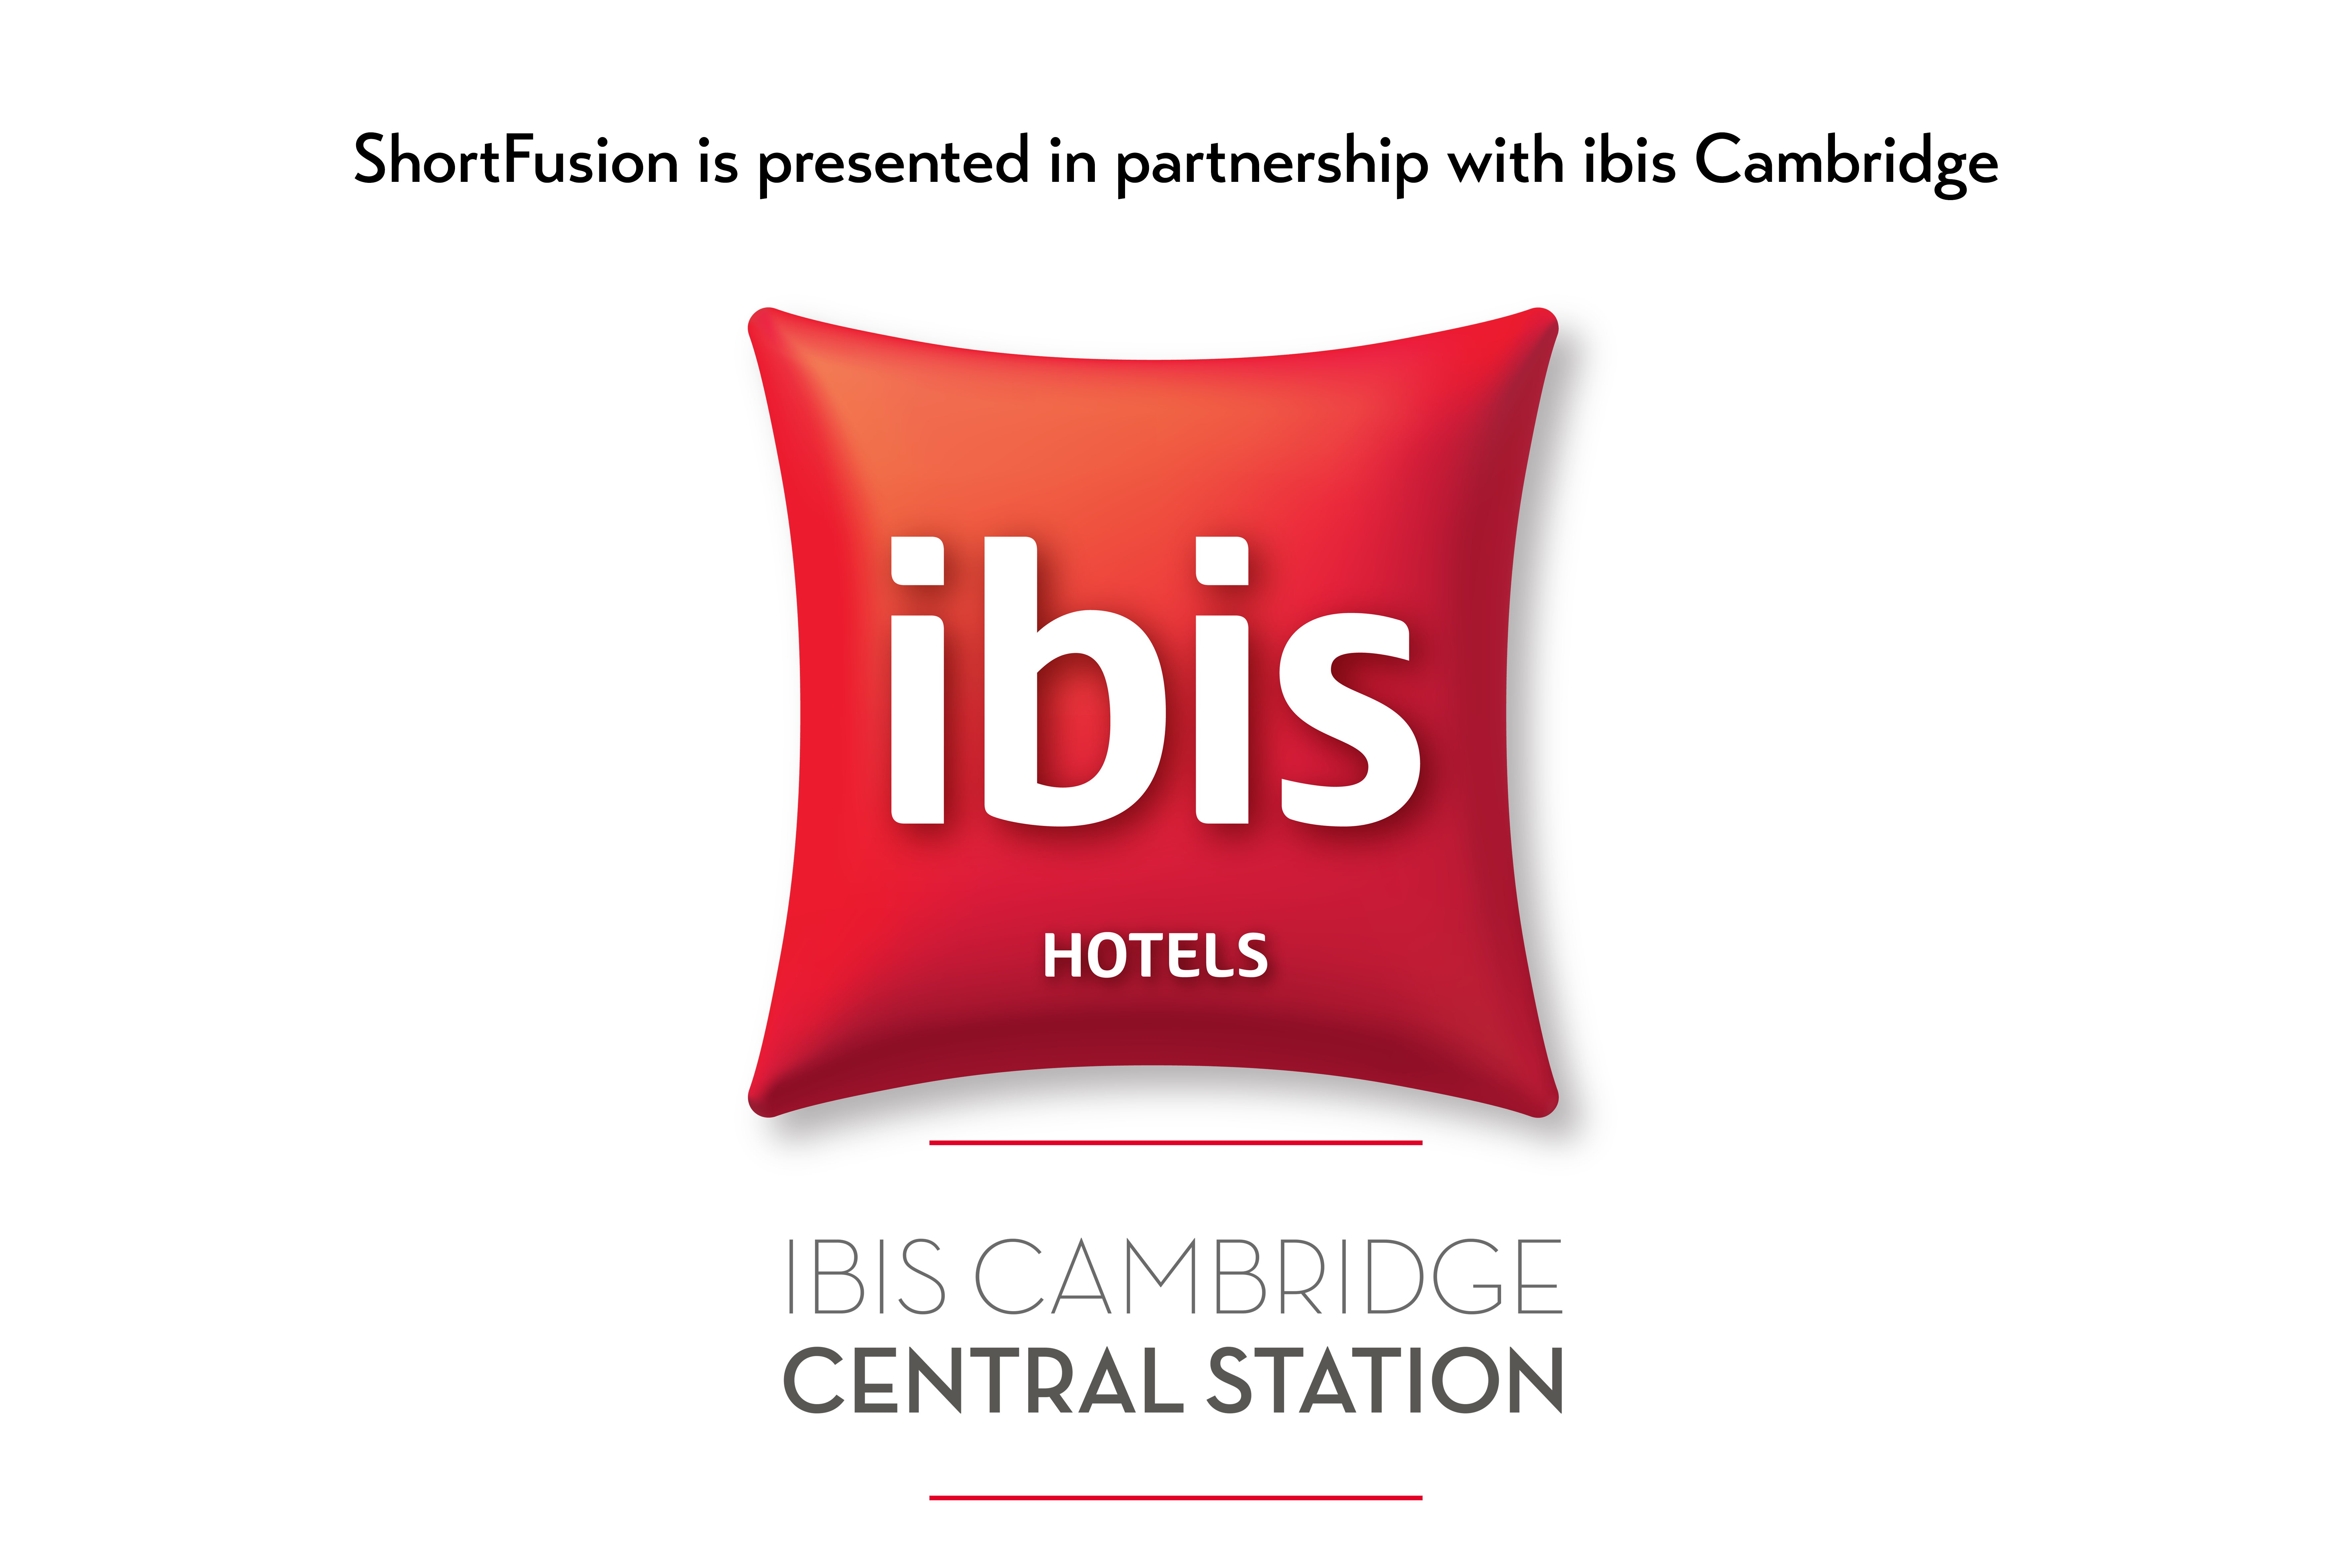 shortFusion is presented in Partnership with ibis Cambridge